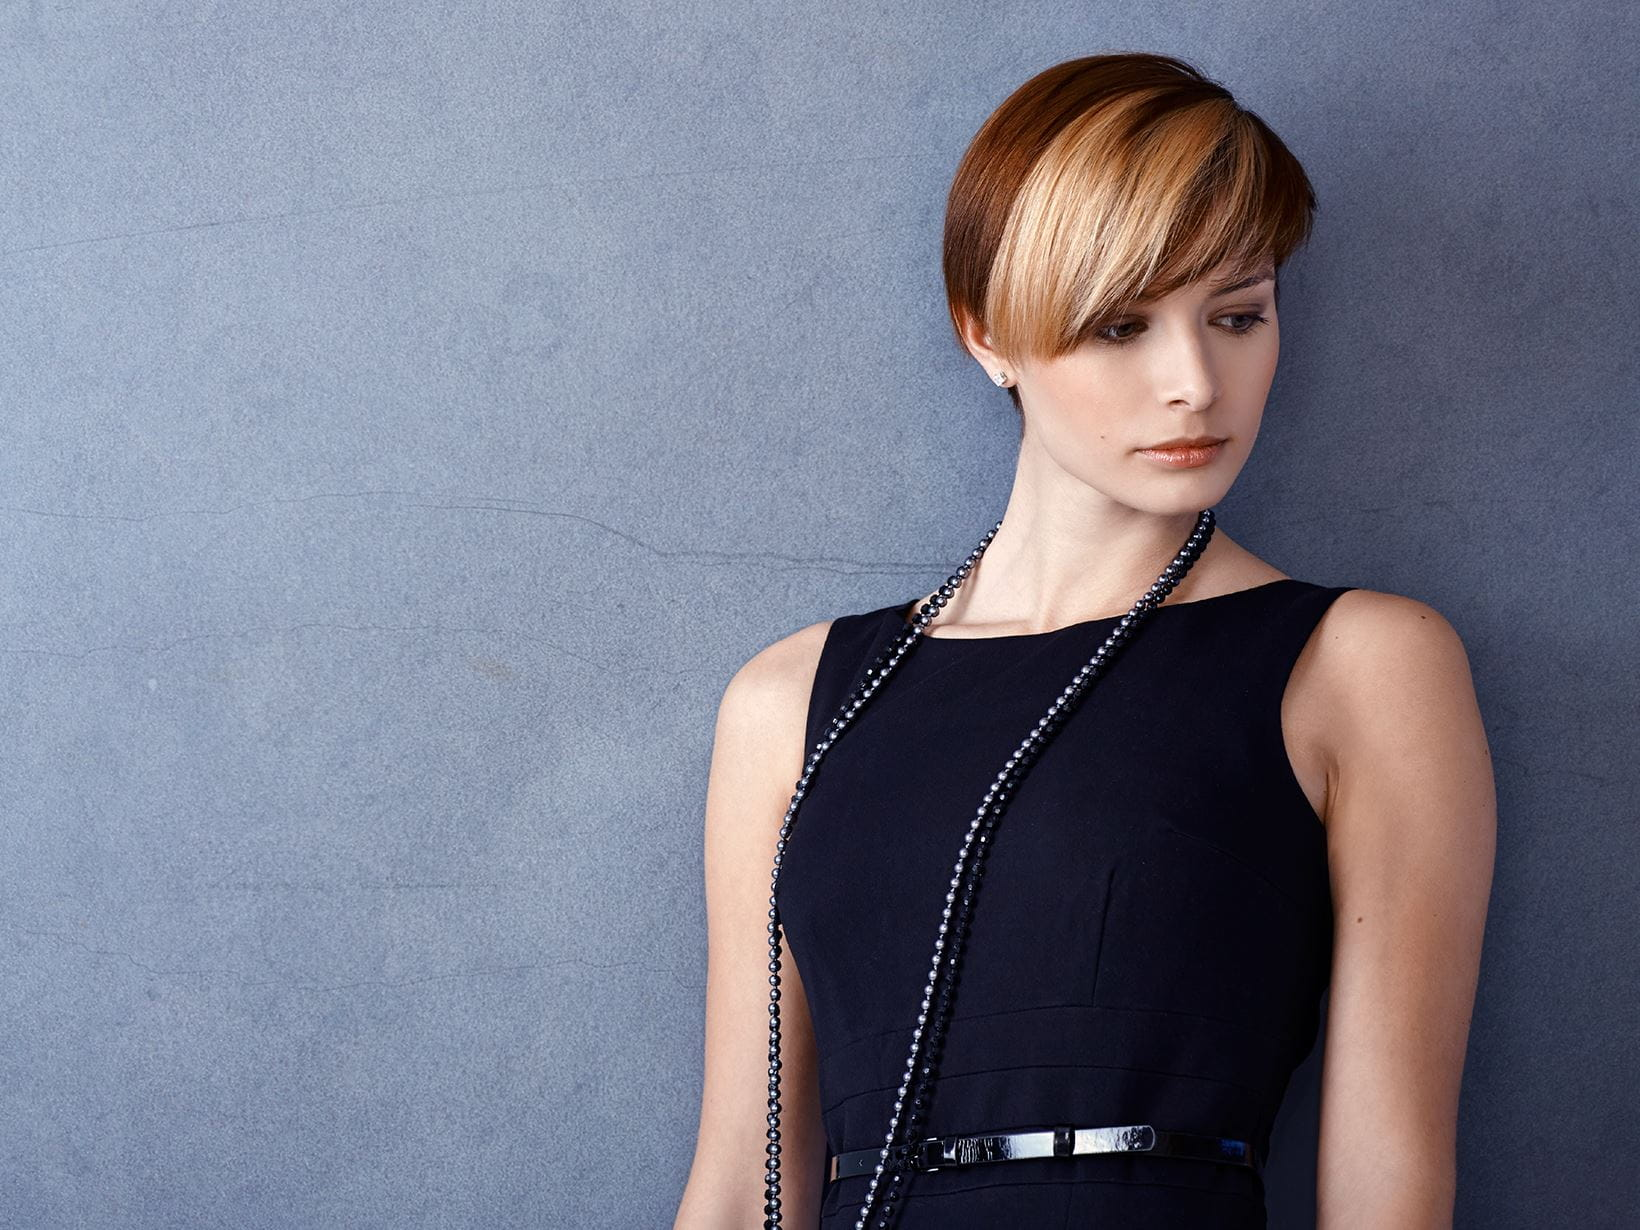 Frisurentrend Pixie Cut